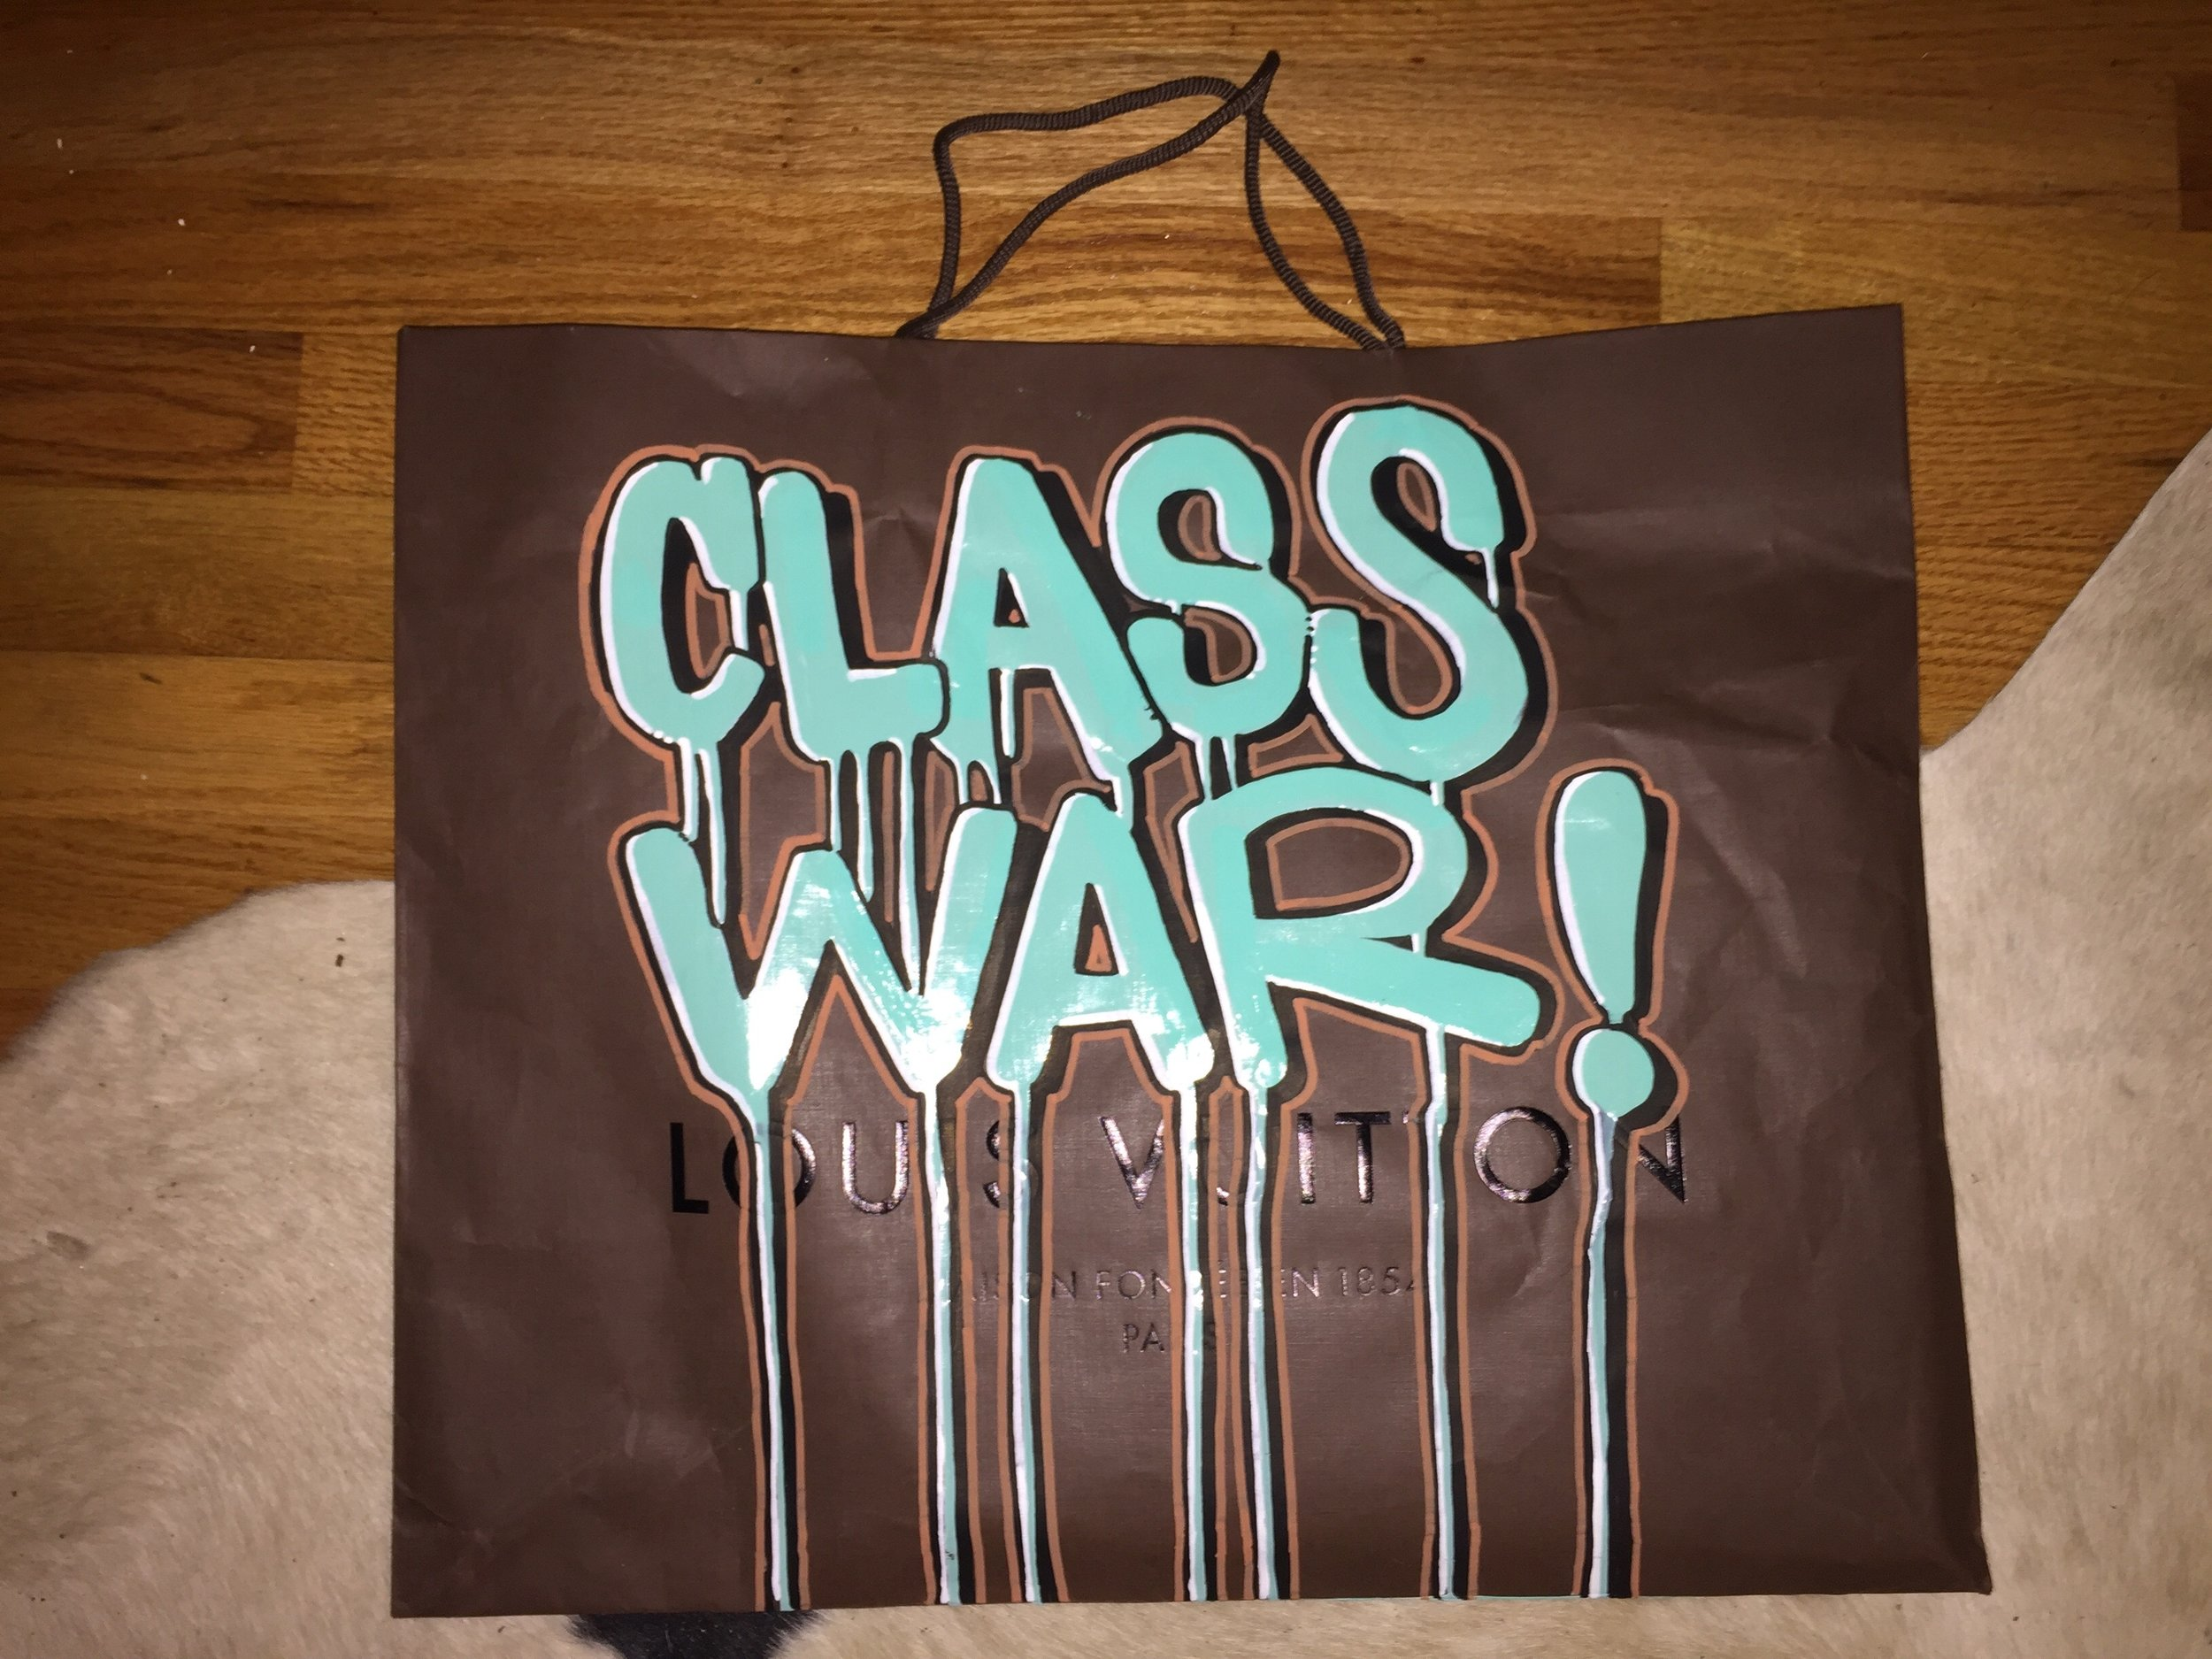 CLASS WAR, 2015  Enamel-based ink, oil-based ink and water-based ink on authentic Louis Vuitton shopping bag